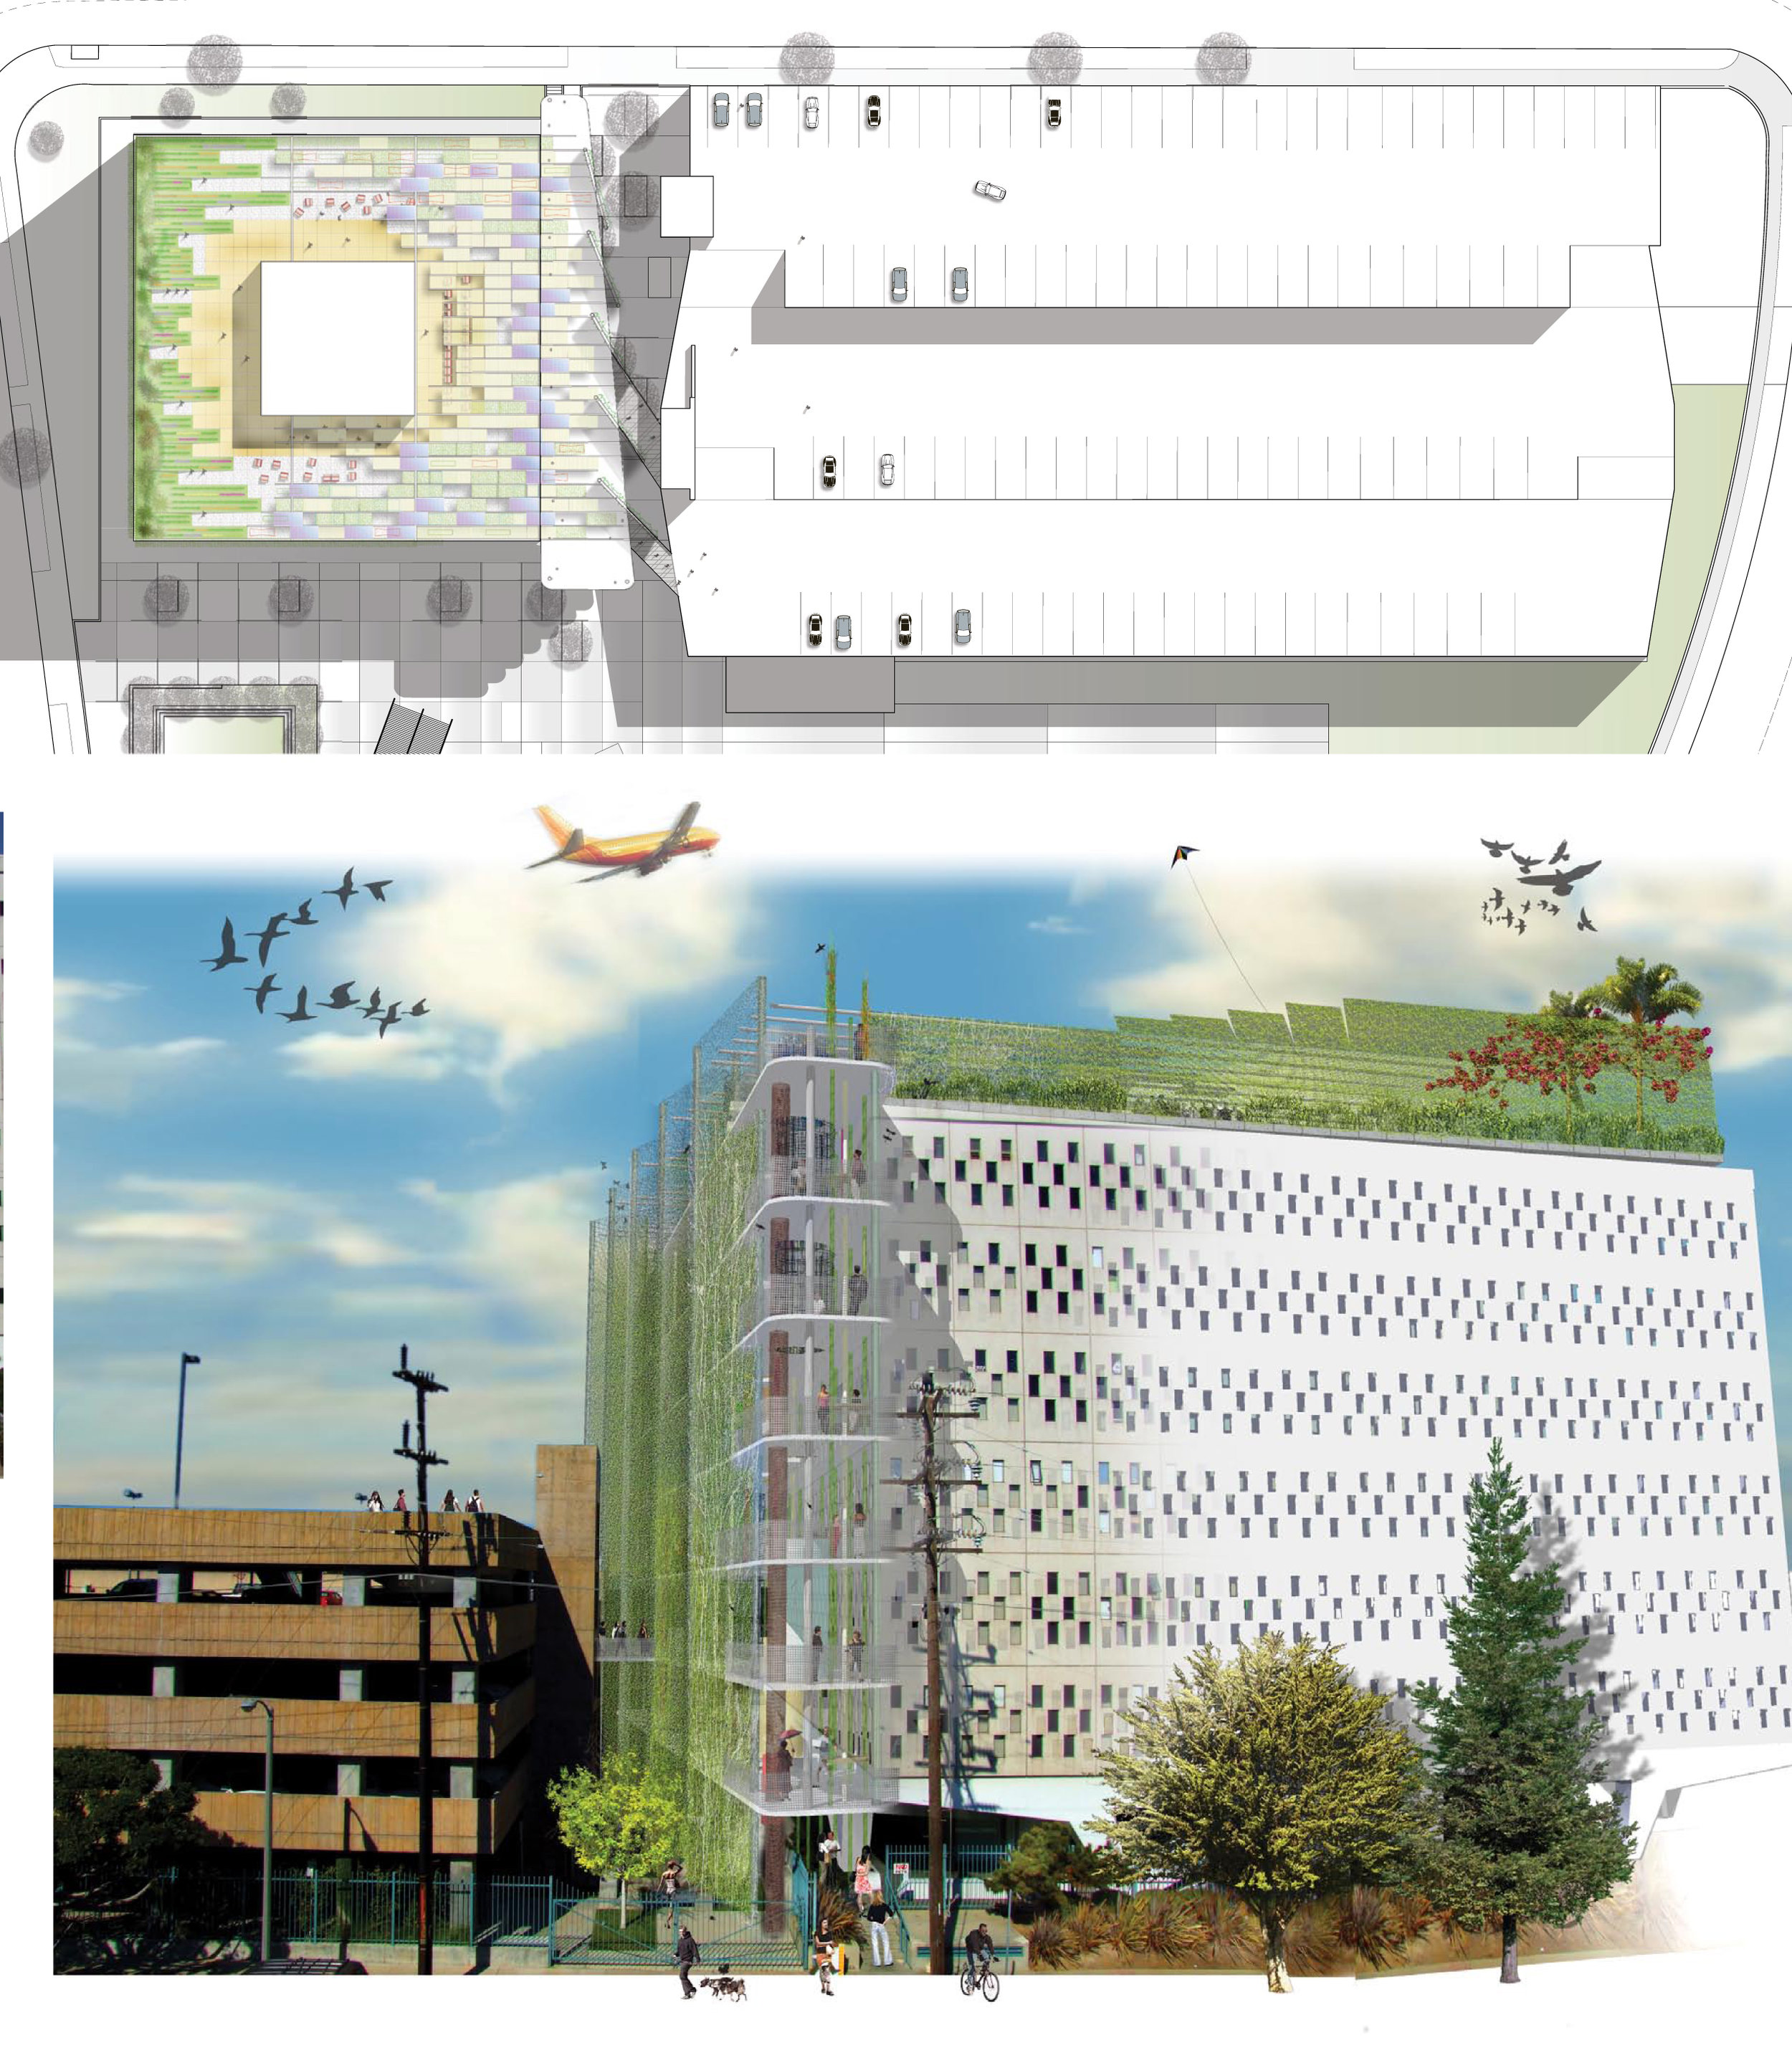 OTIS_Green Roof and Vertical Garden.jpg